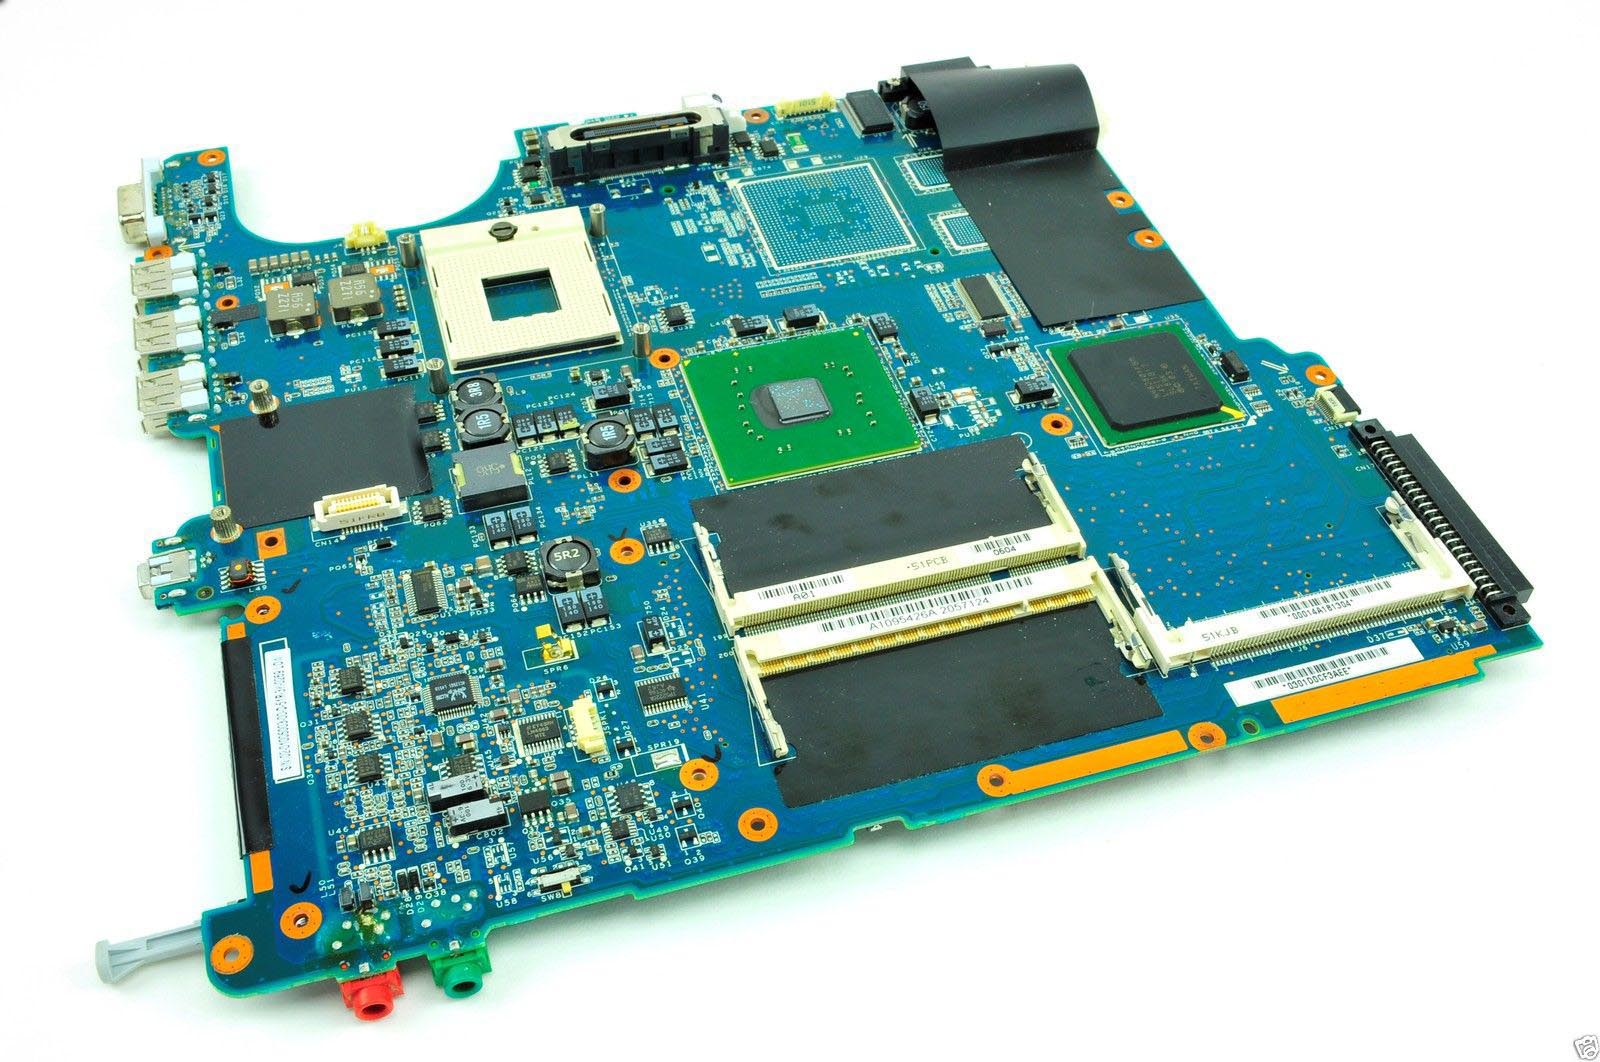 SHELI MBX 130 laptop Motherboard For Sony MBX-130 MS01-M/B A1095426A 1P-0041200-8010 for intel cpu with integrated graphics card sheli mbx 165 laptop motherboard for sony mbx 165 ms91 a1369748b 1p 0076500 8010 for intel cpu with non integrated graphics card